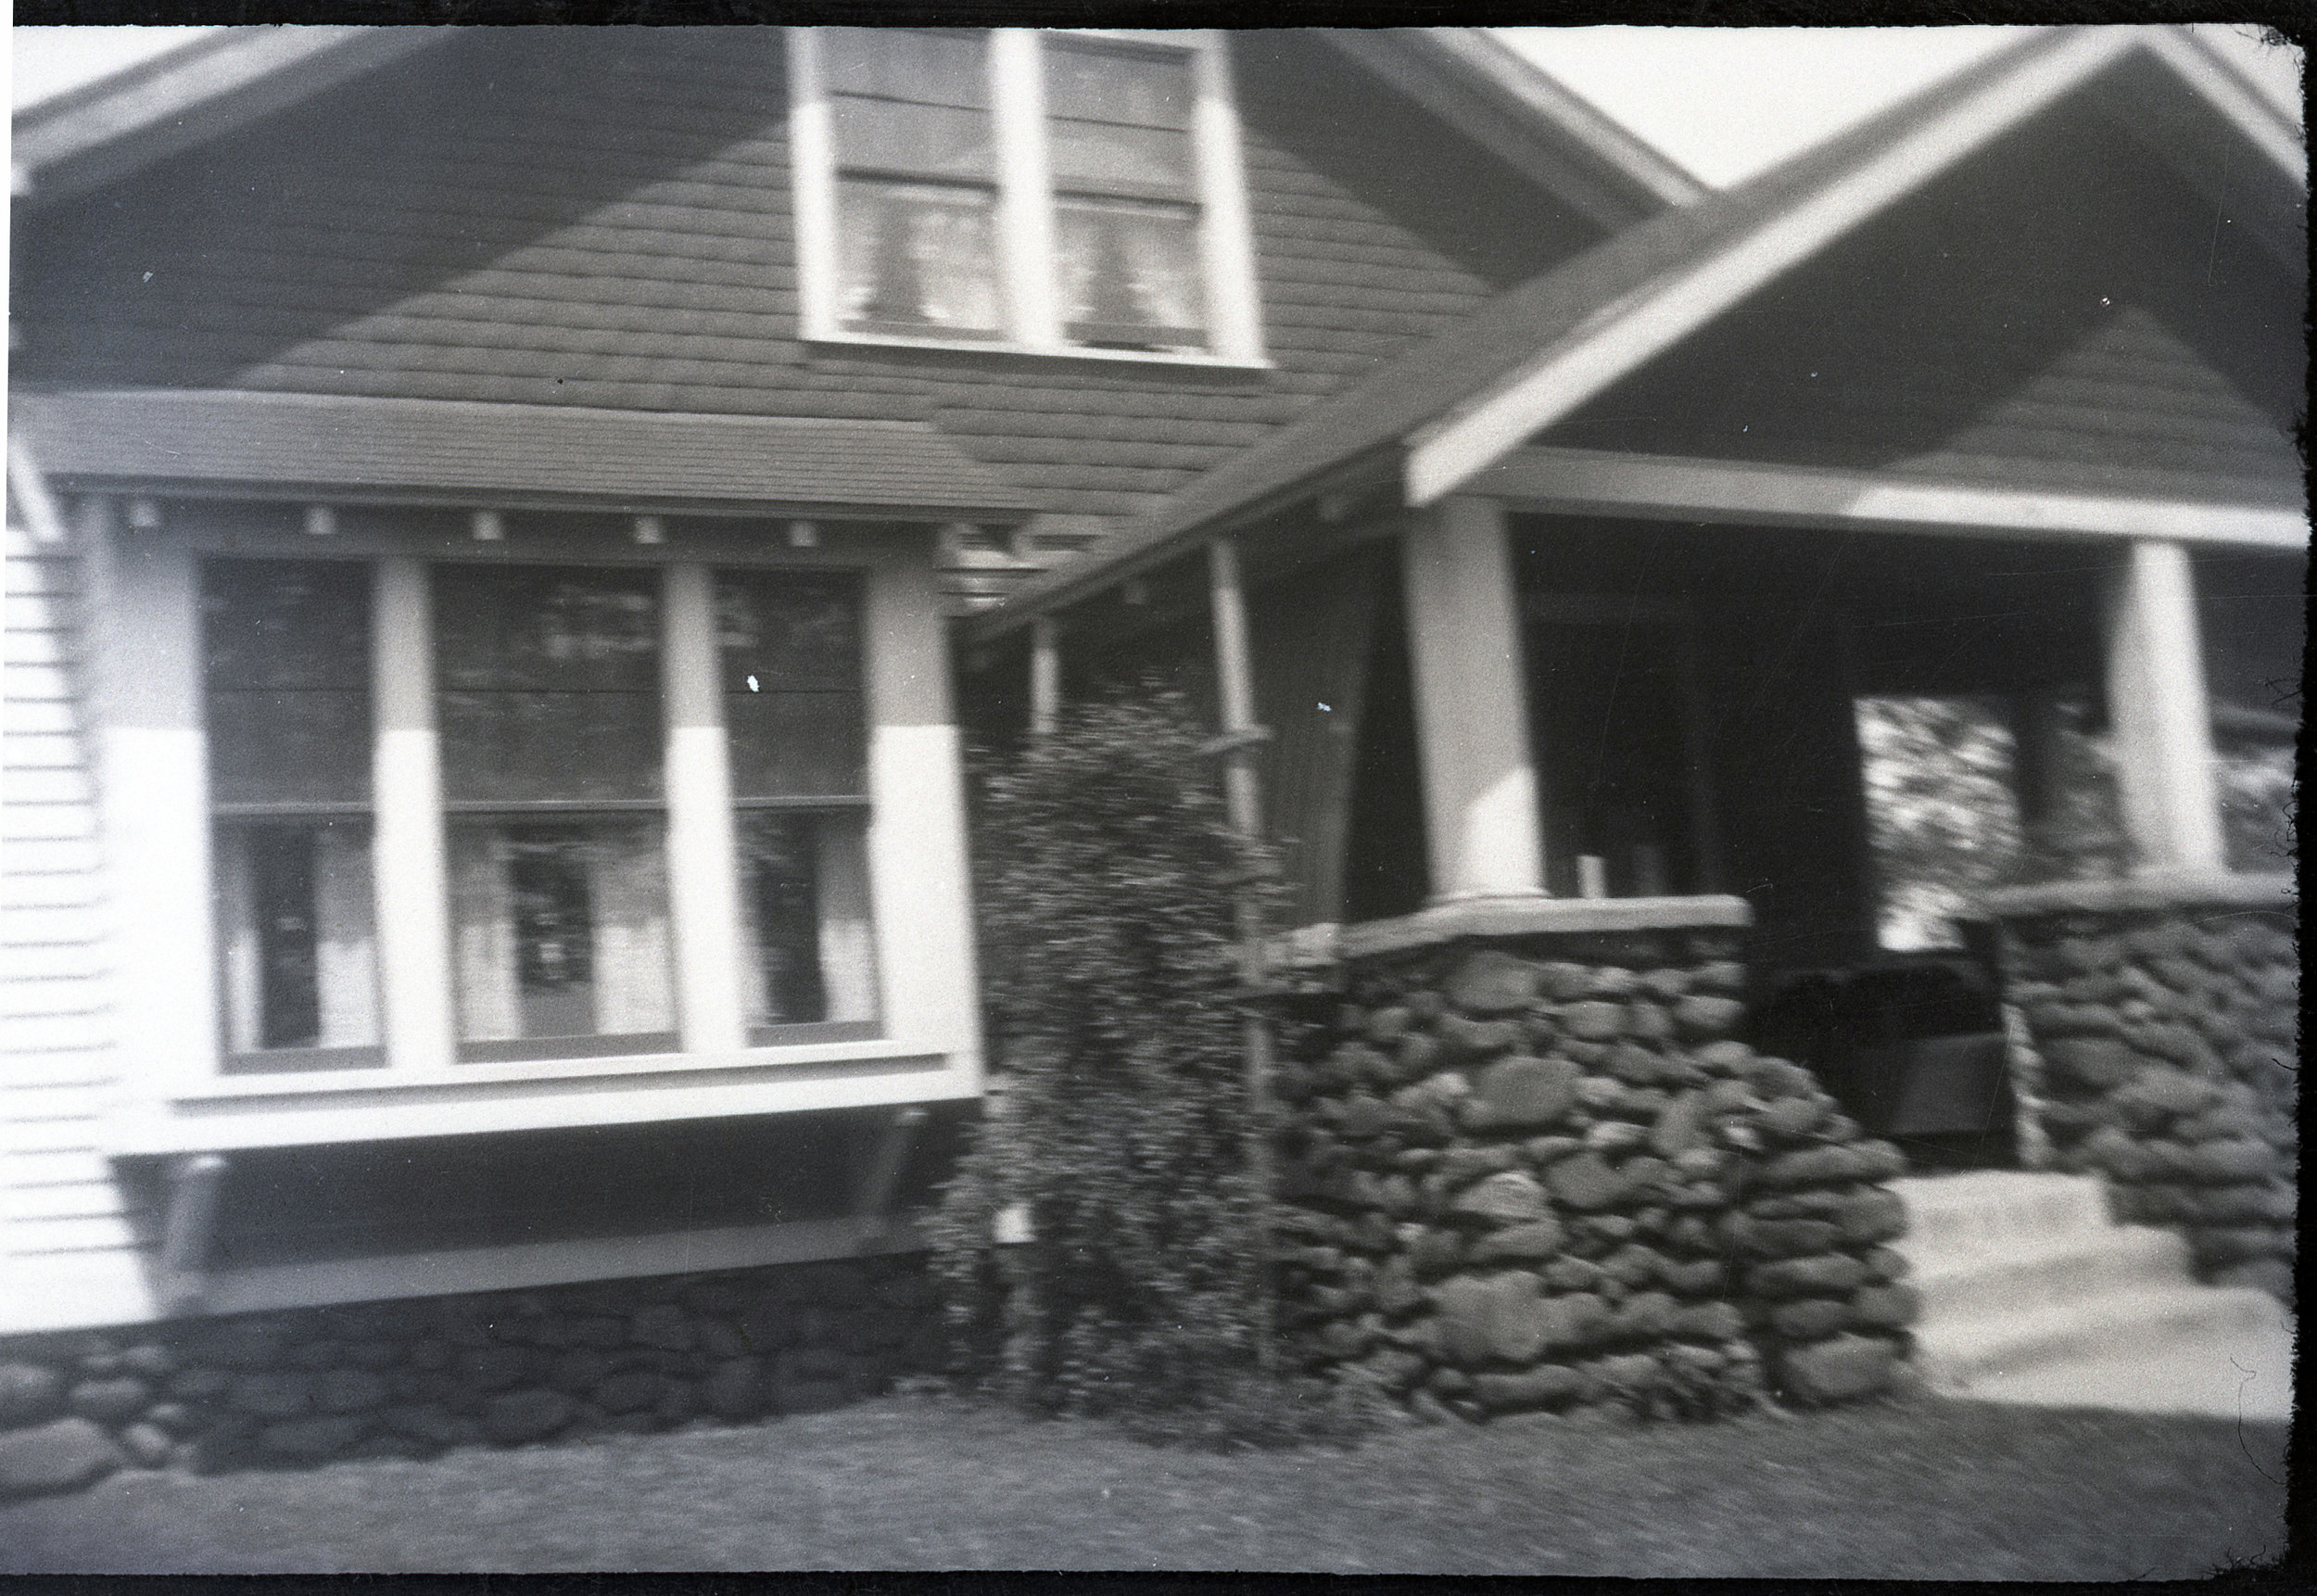 The House on Chapel Street, Milford Ct.